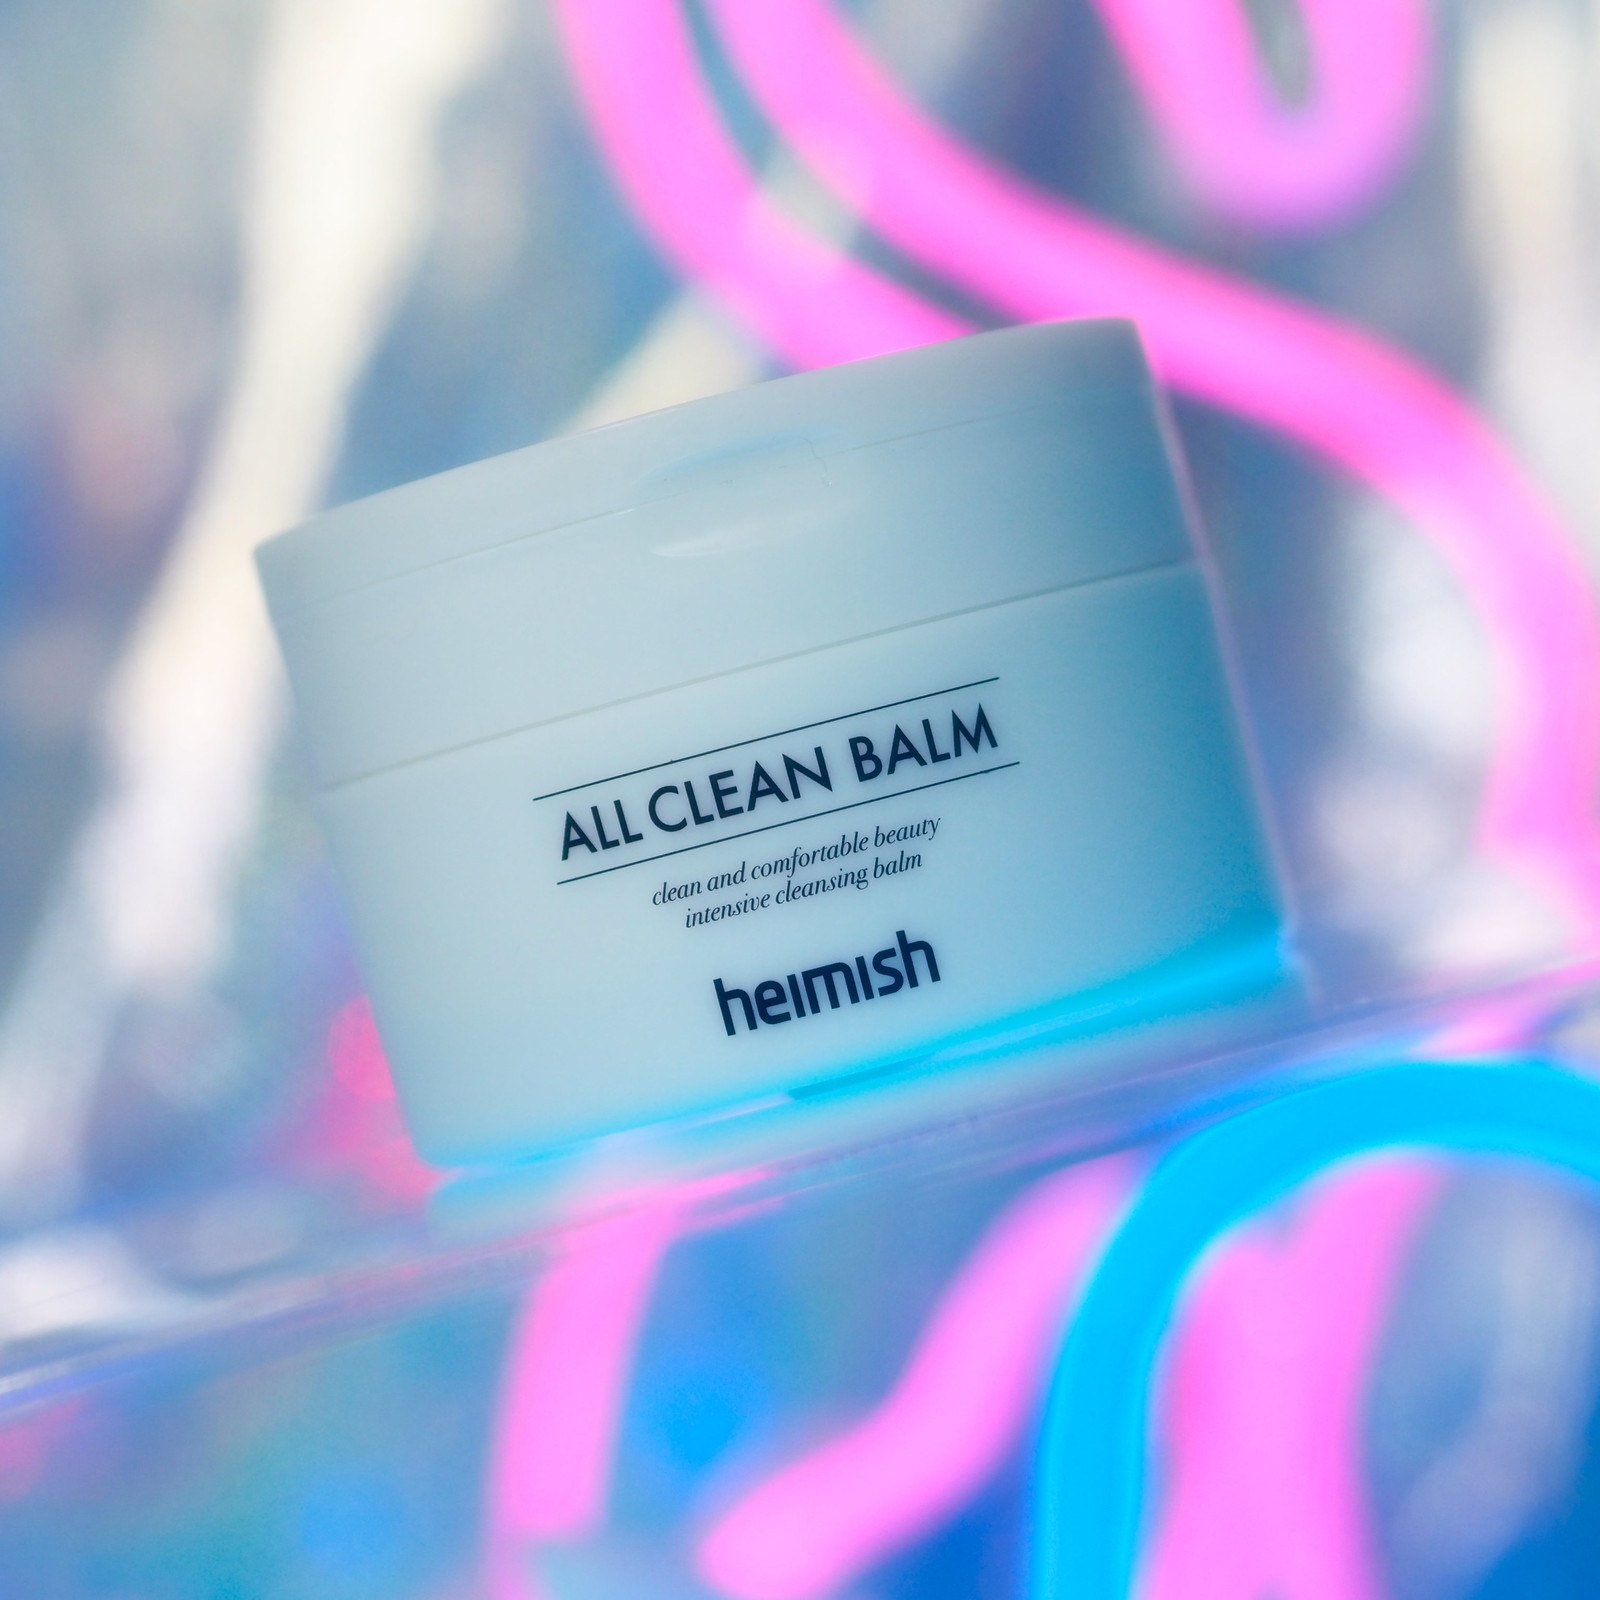 Heimish All Clean Balm K Beauty product review